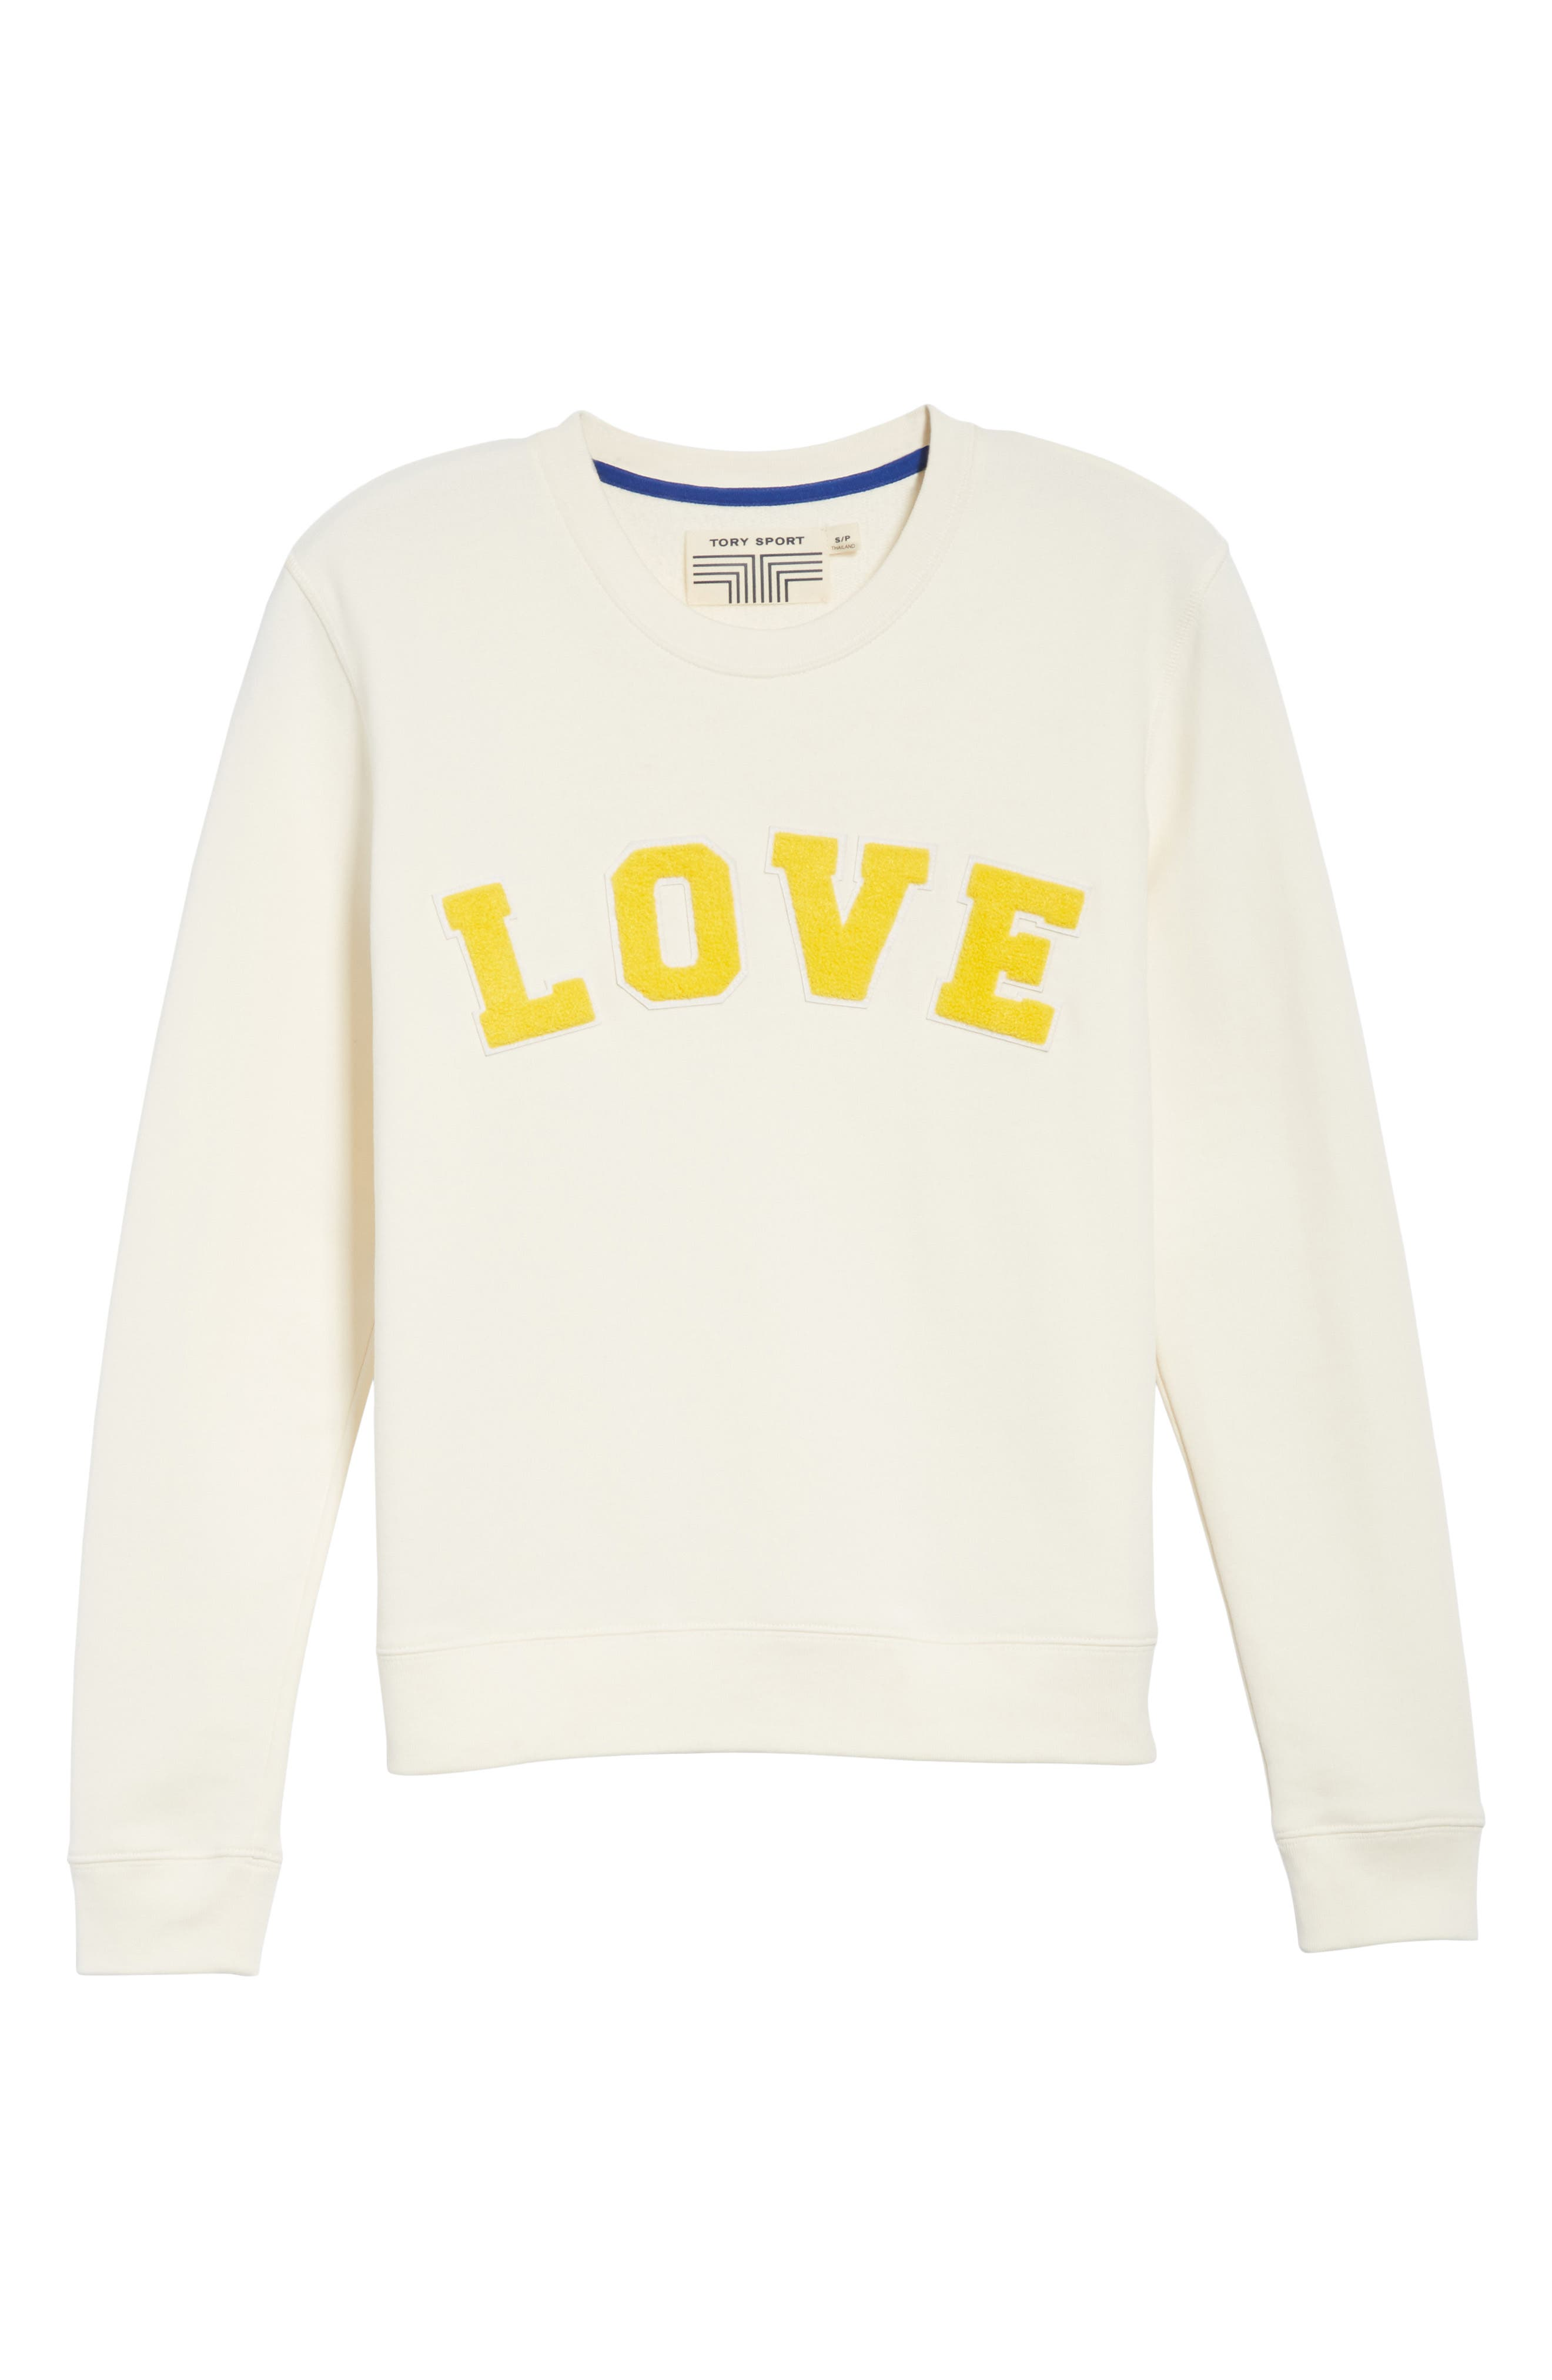 Love Cotton Terry Sweatshirt,                             Alternate thumbnail 6, color,                             Ivory Pearl/ Sundance